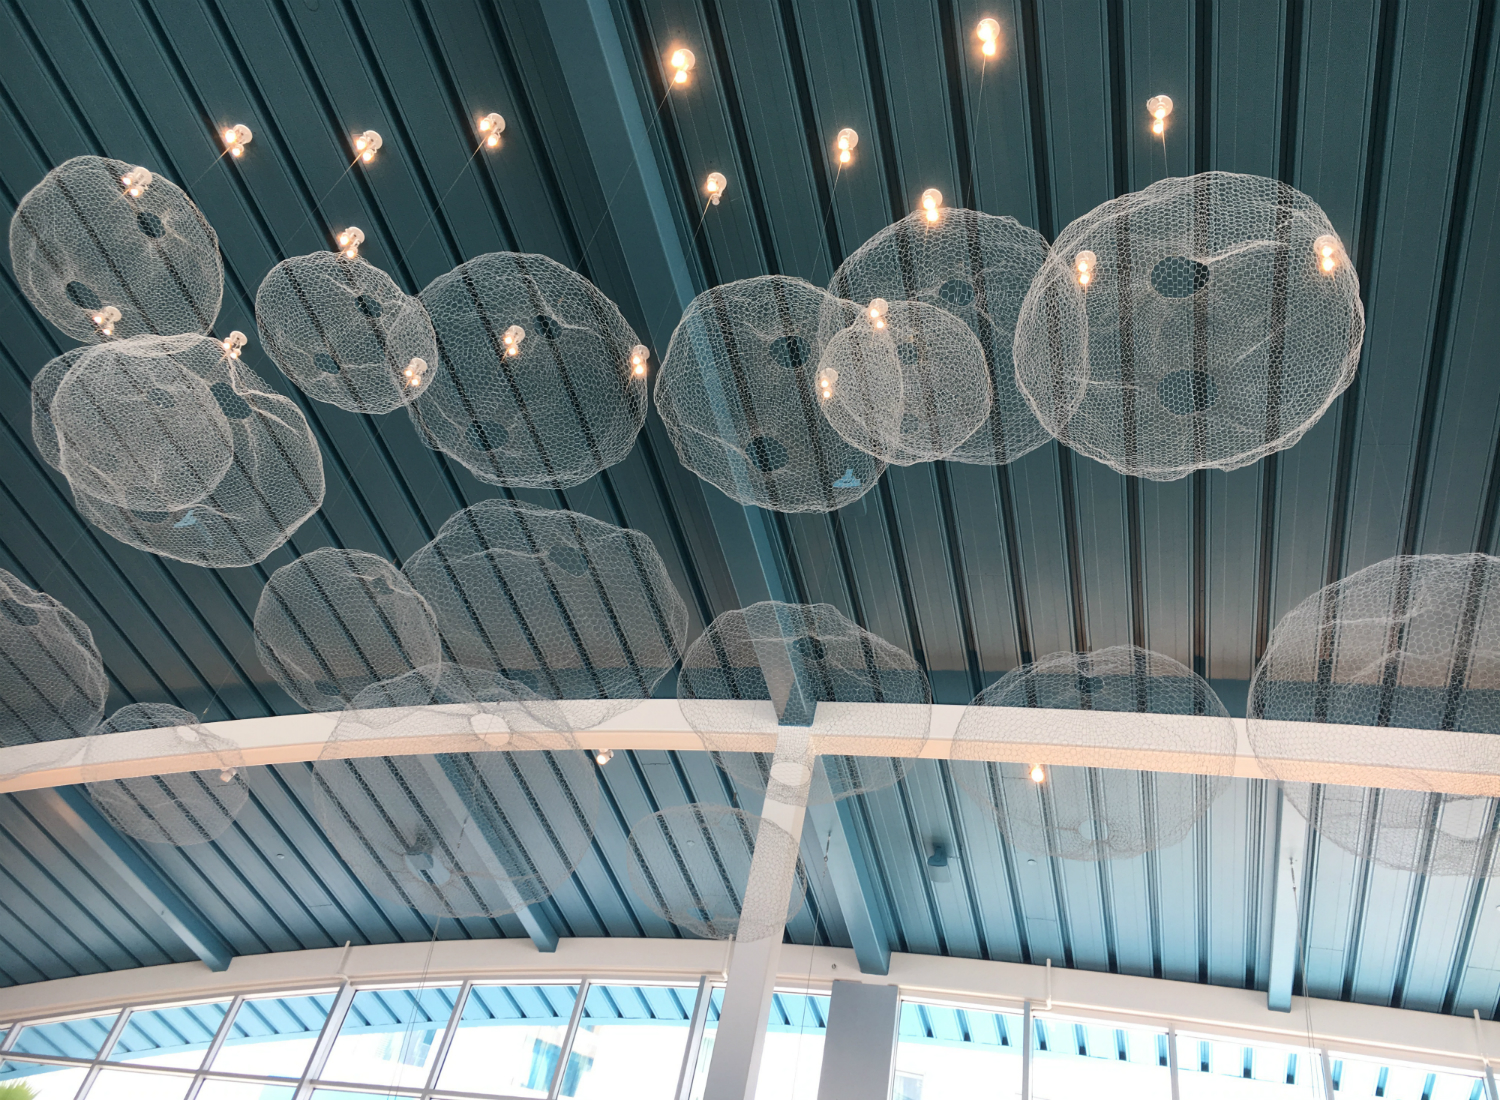 The lobby features decor on the ceiling reminiscent of sea foam.